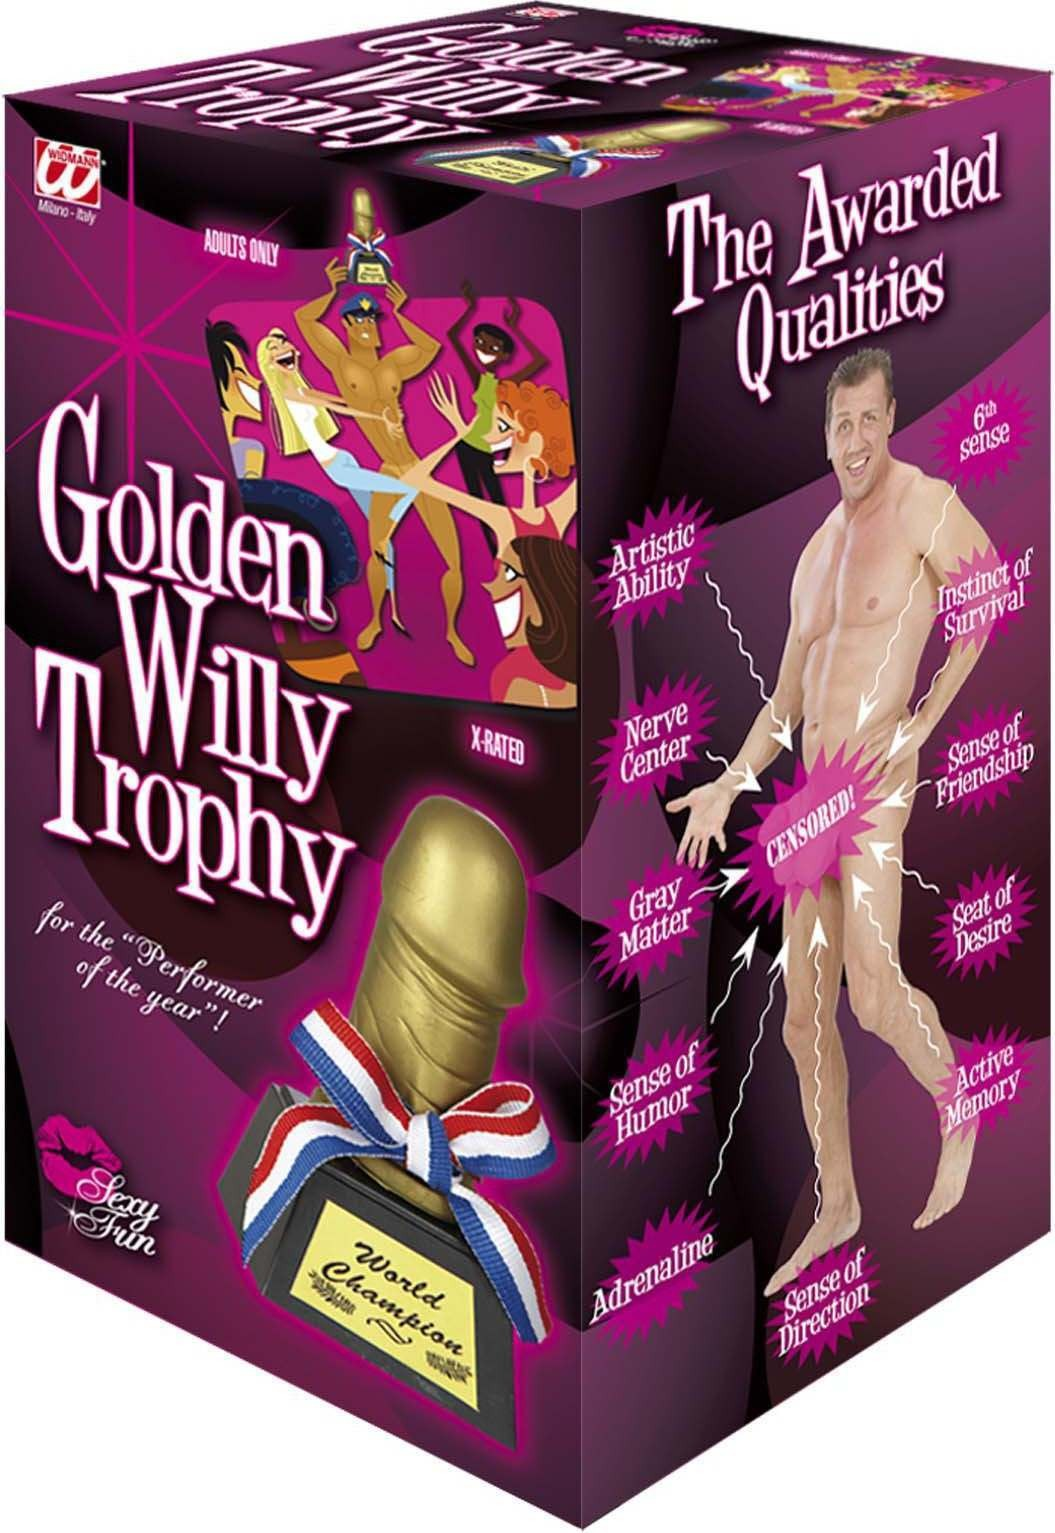 Golden Willy Trophies Other